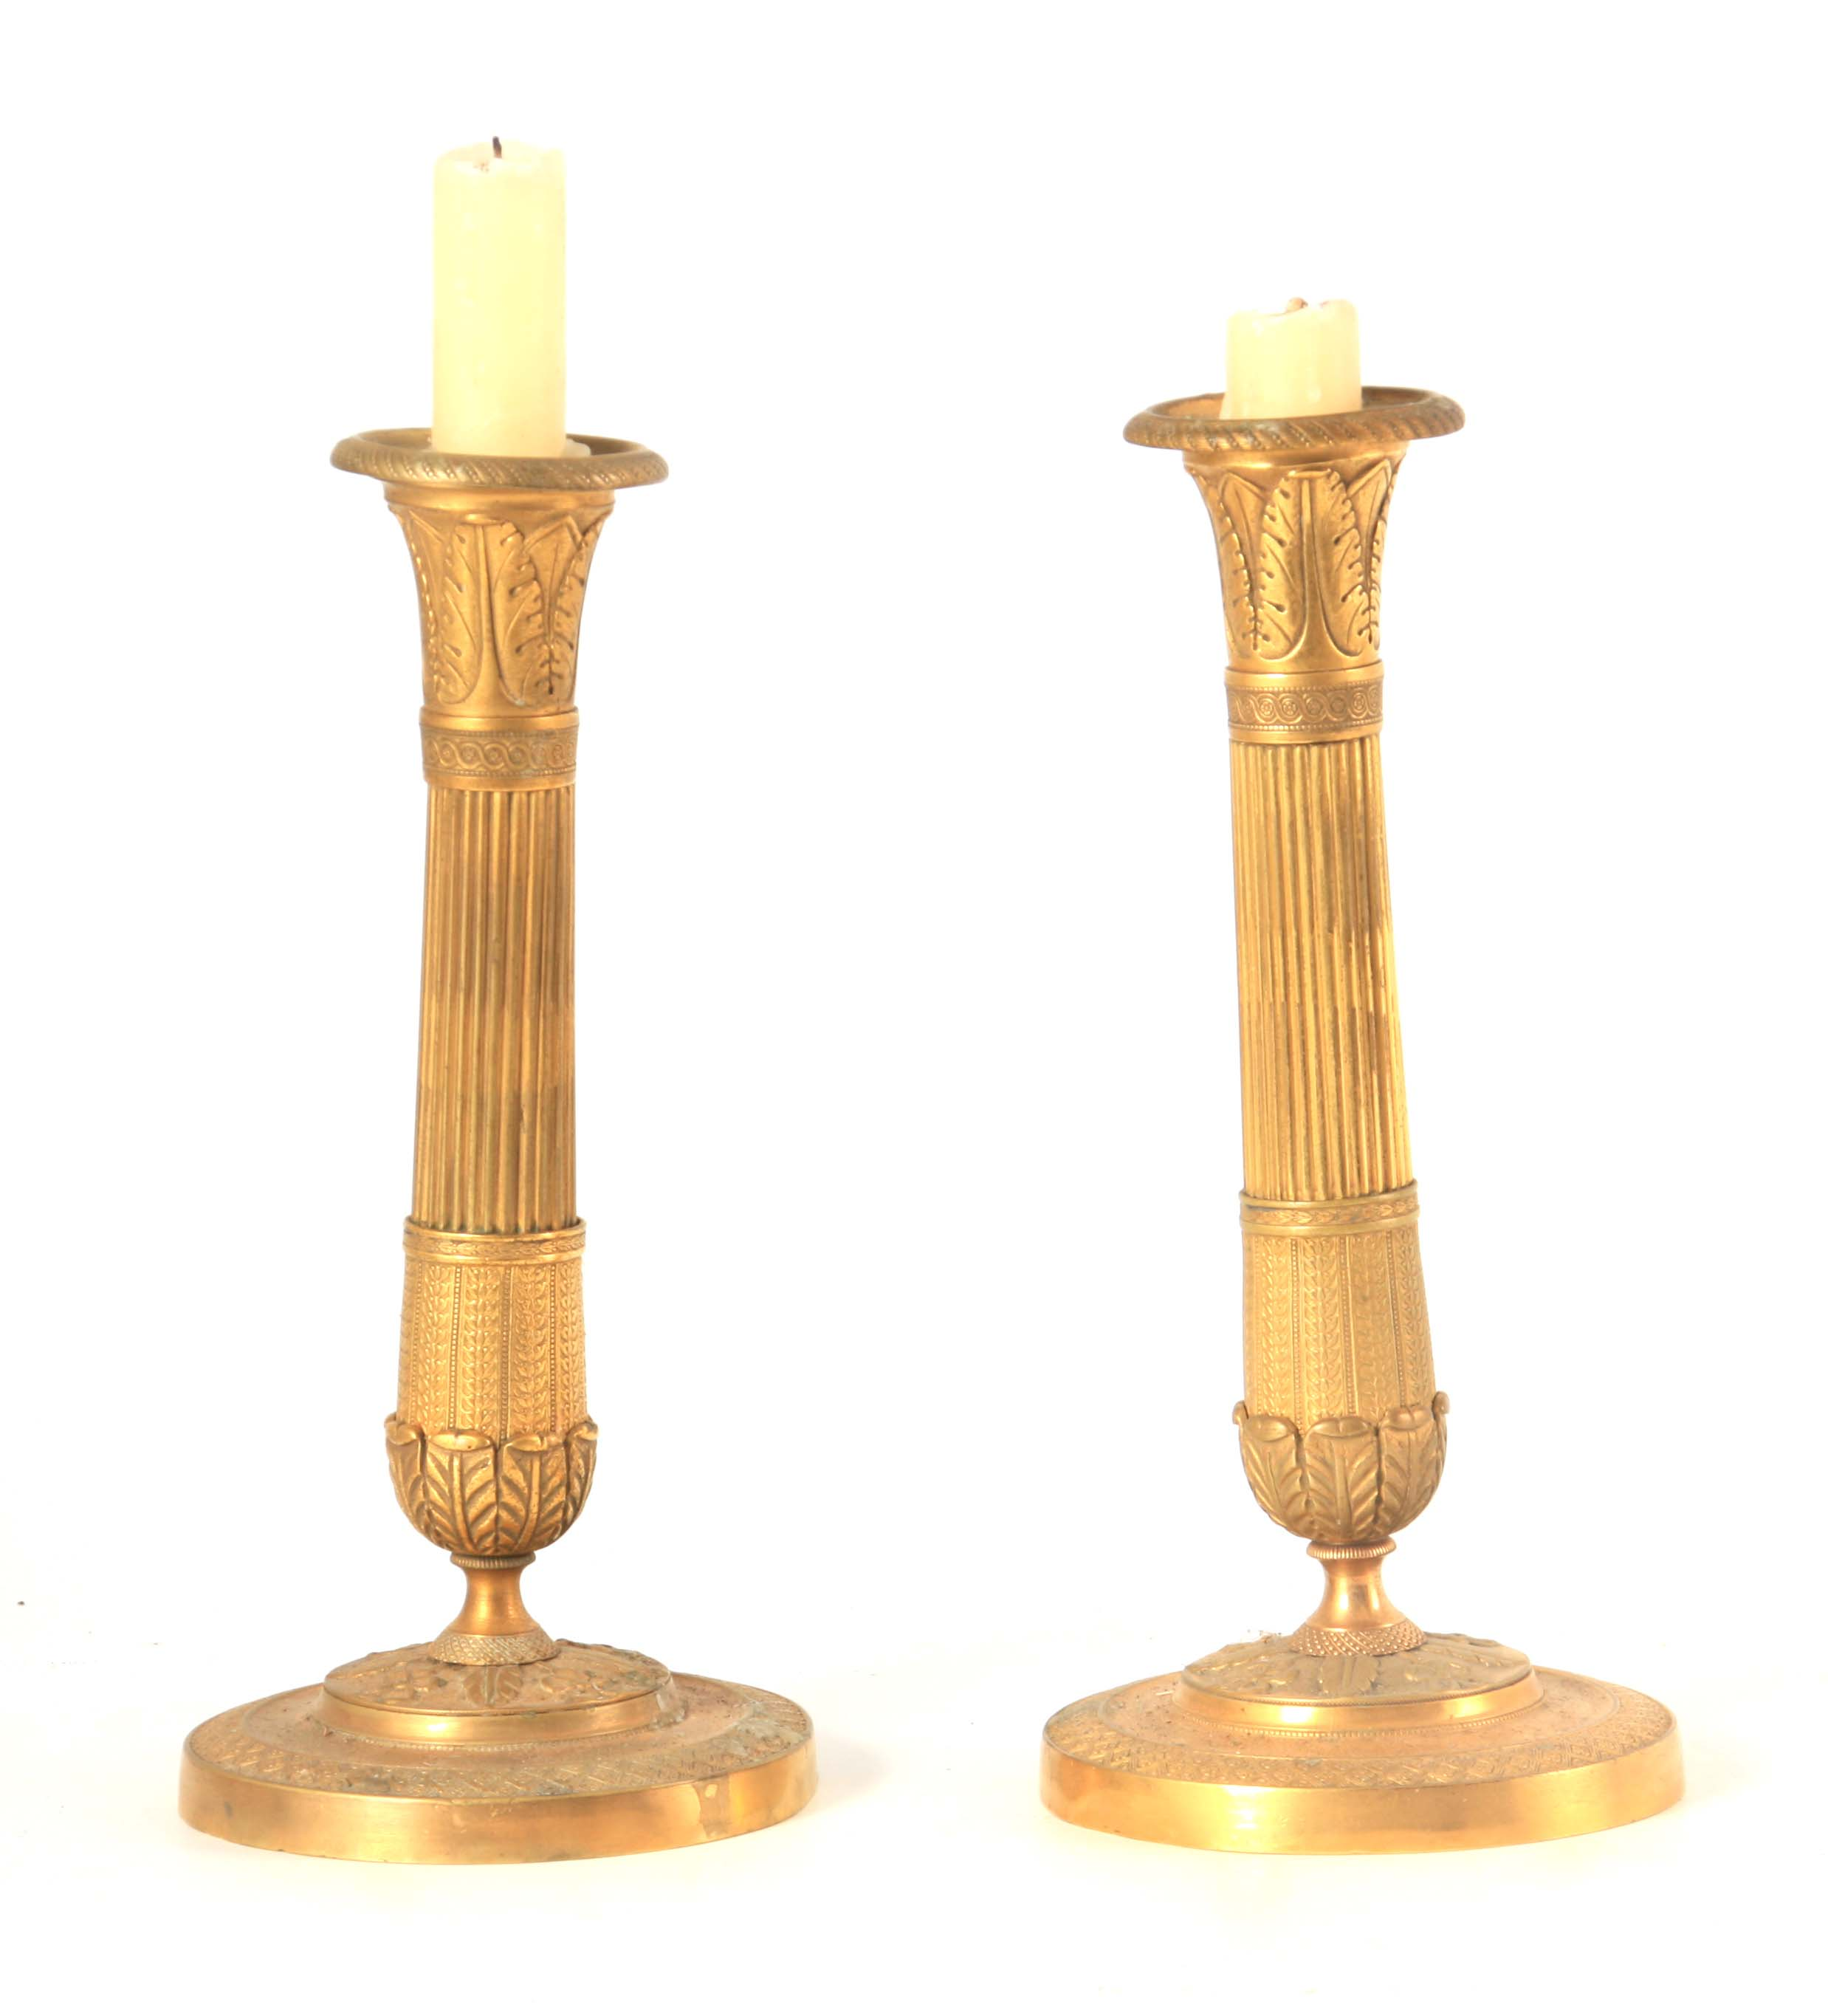 A PAIR OF 19TH CENTURY FRENCH EMPIRE GILT BRASS CANDLESTICKS of classical form with leaf cast scones